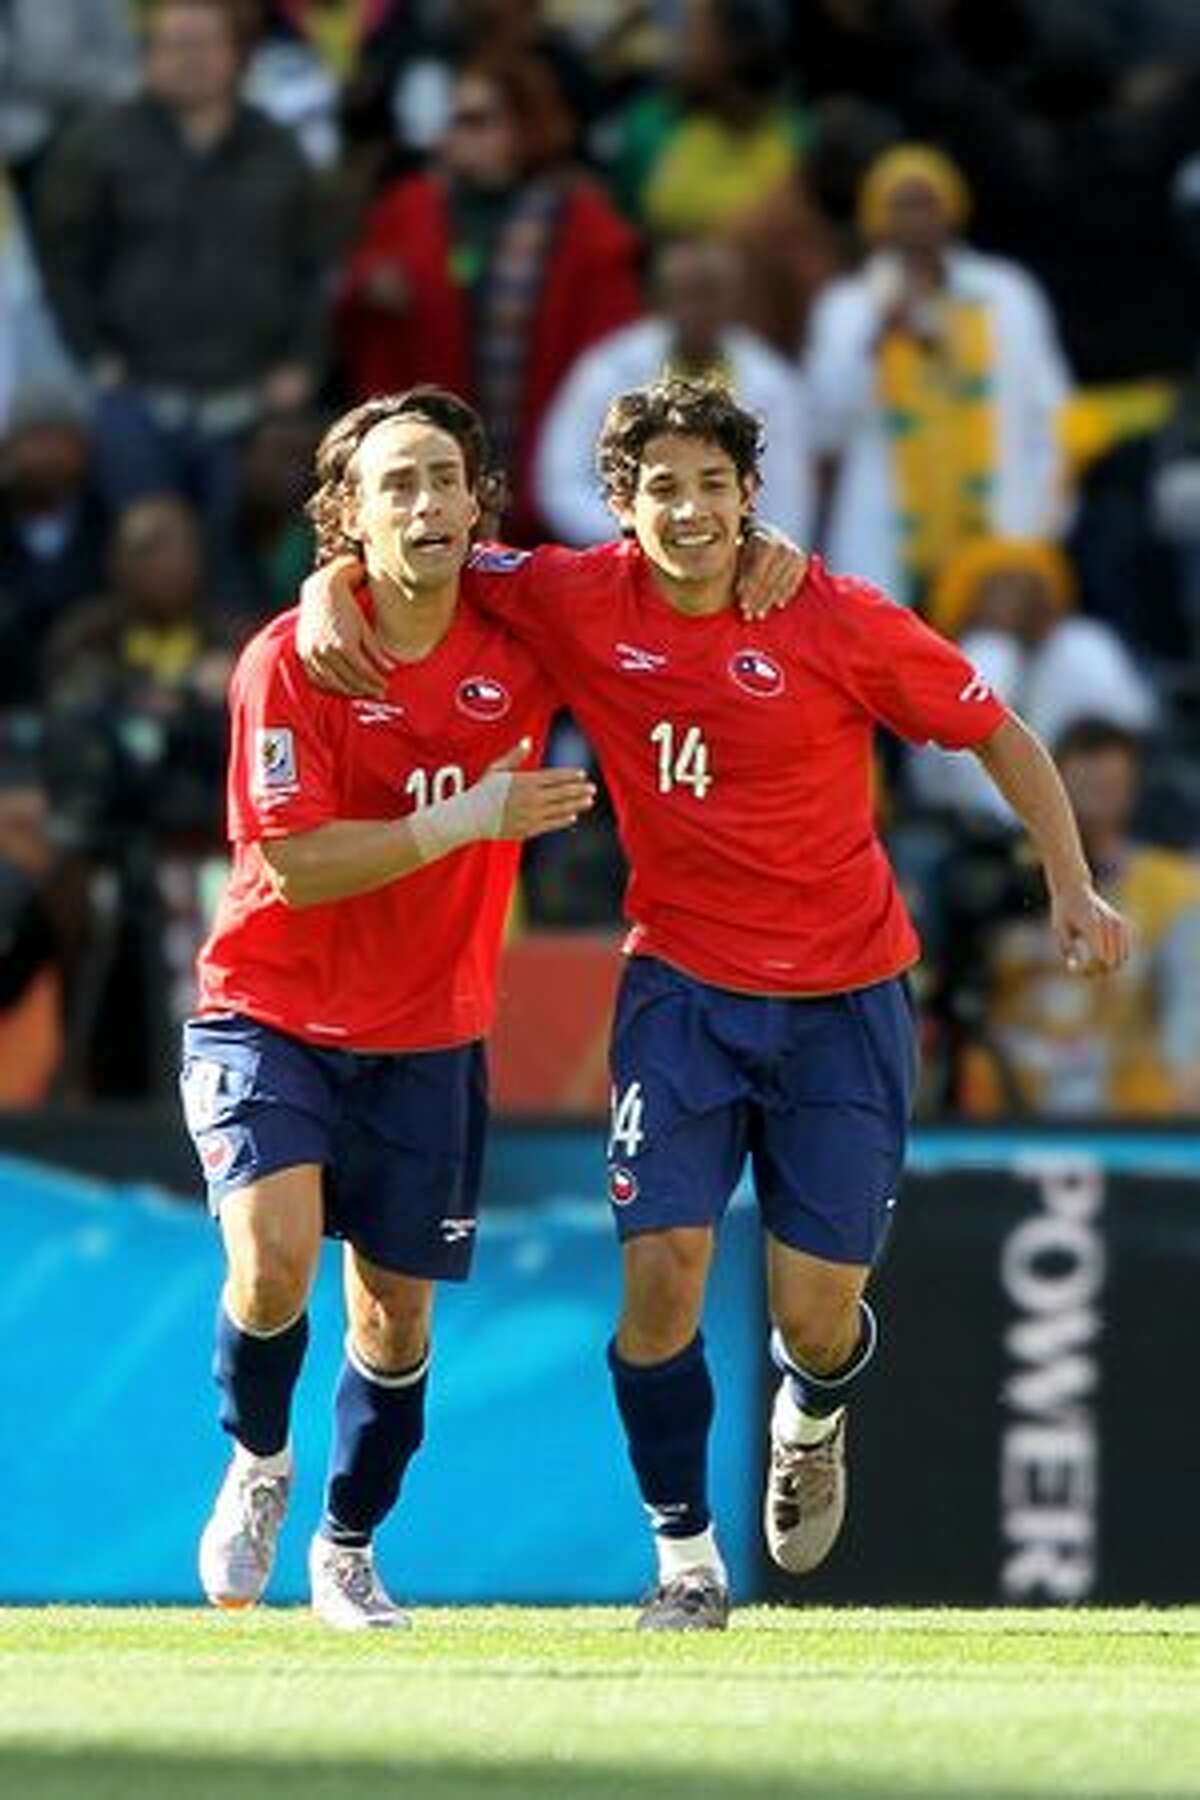 Jorge Valdivia of Chile (L) celebrates the opening goal with team mate Matias Fernandez during the 2010 FIFA World Cup South Africa Group H match between Honduras and Chile at the Mbombela Stadium on June 16, 2010 in Nelspruit, South Africa.